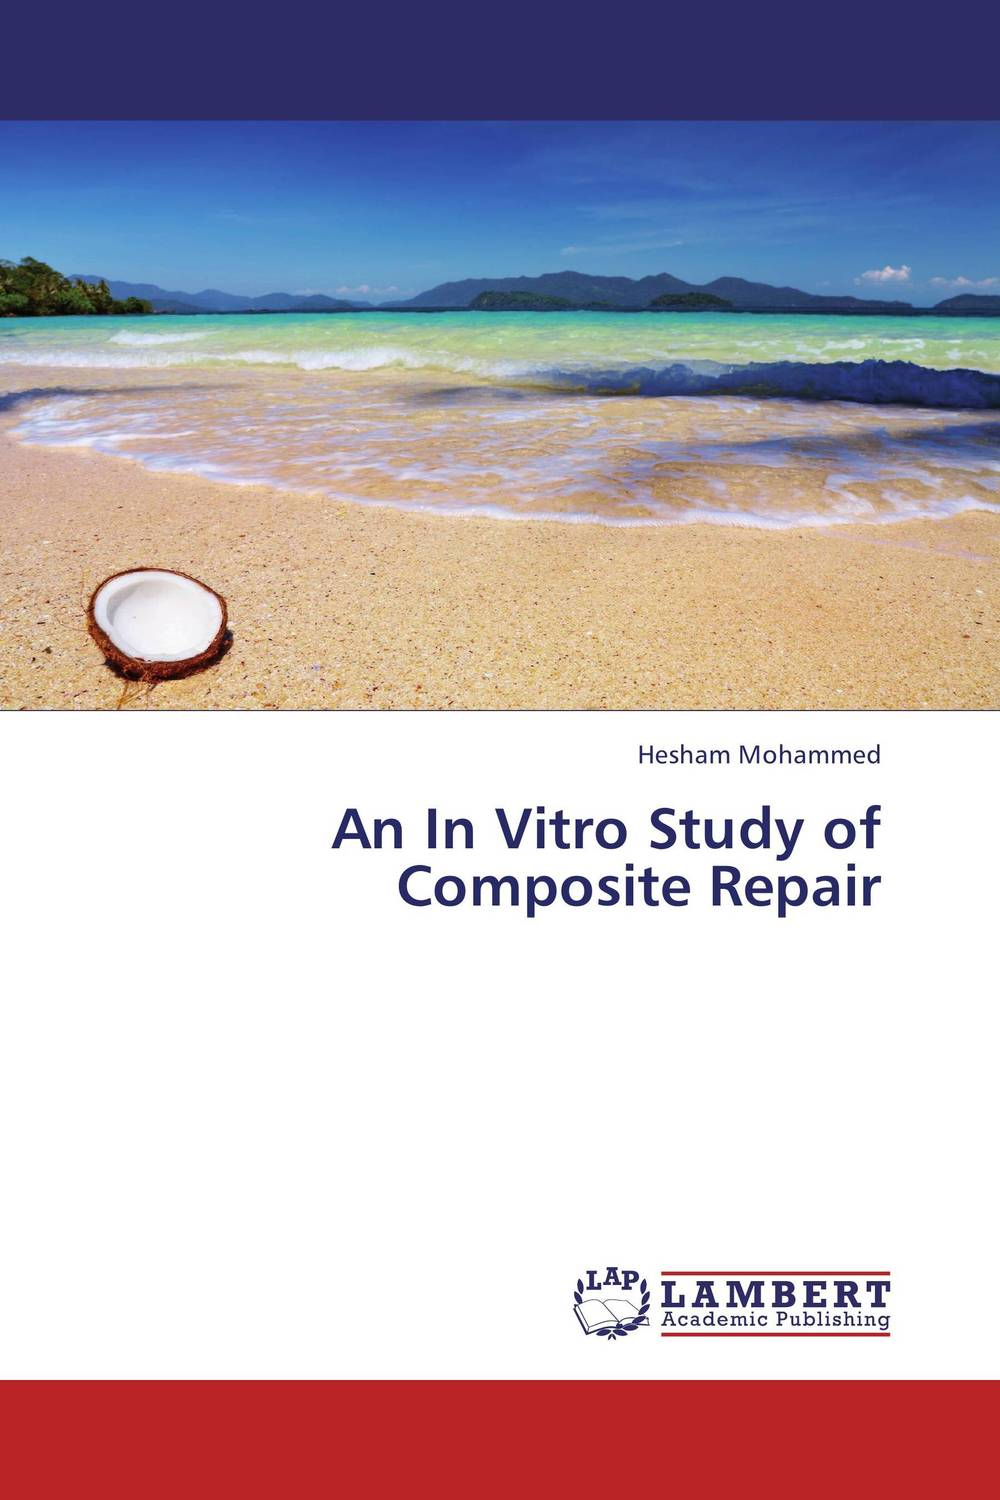 An In Vitro Study of Composite Repair in vitro mechanism for the repair of muscle differentiation in dm1